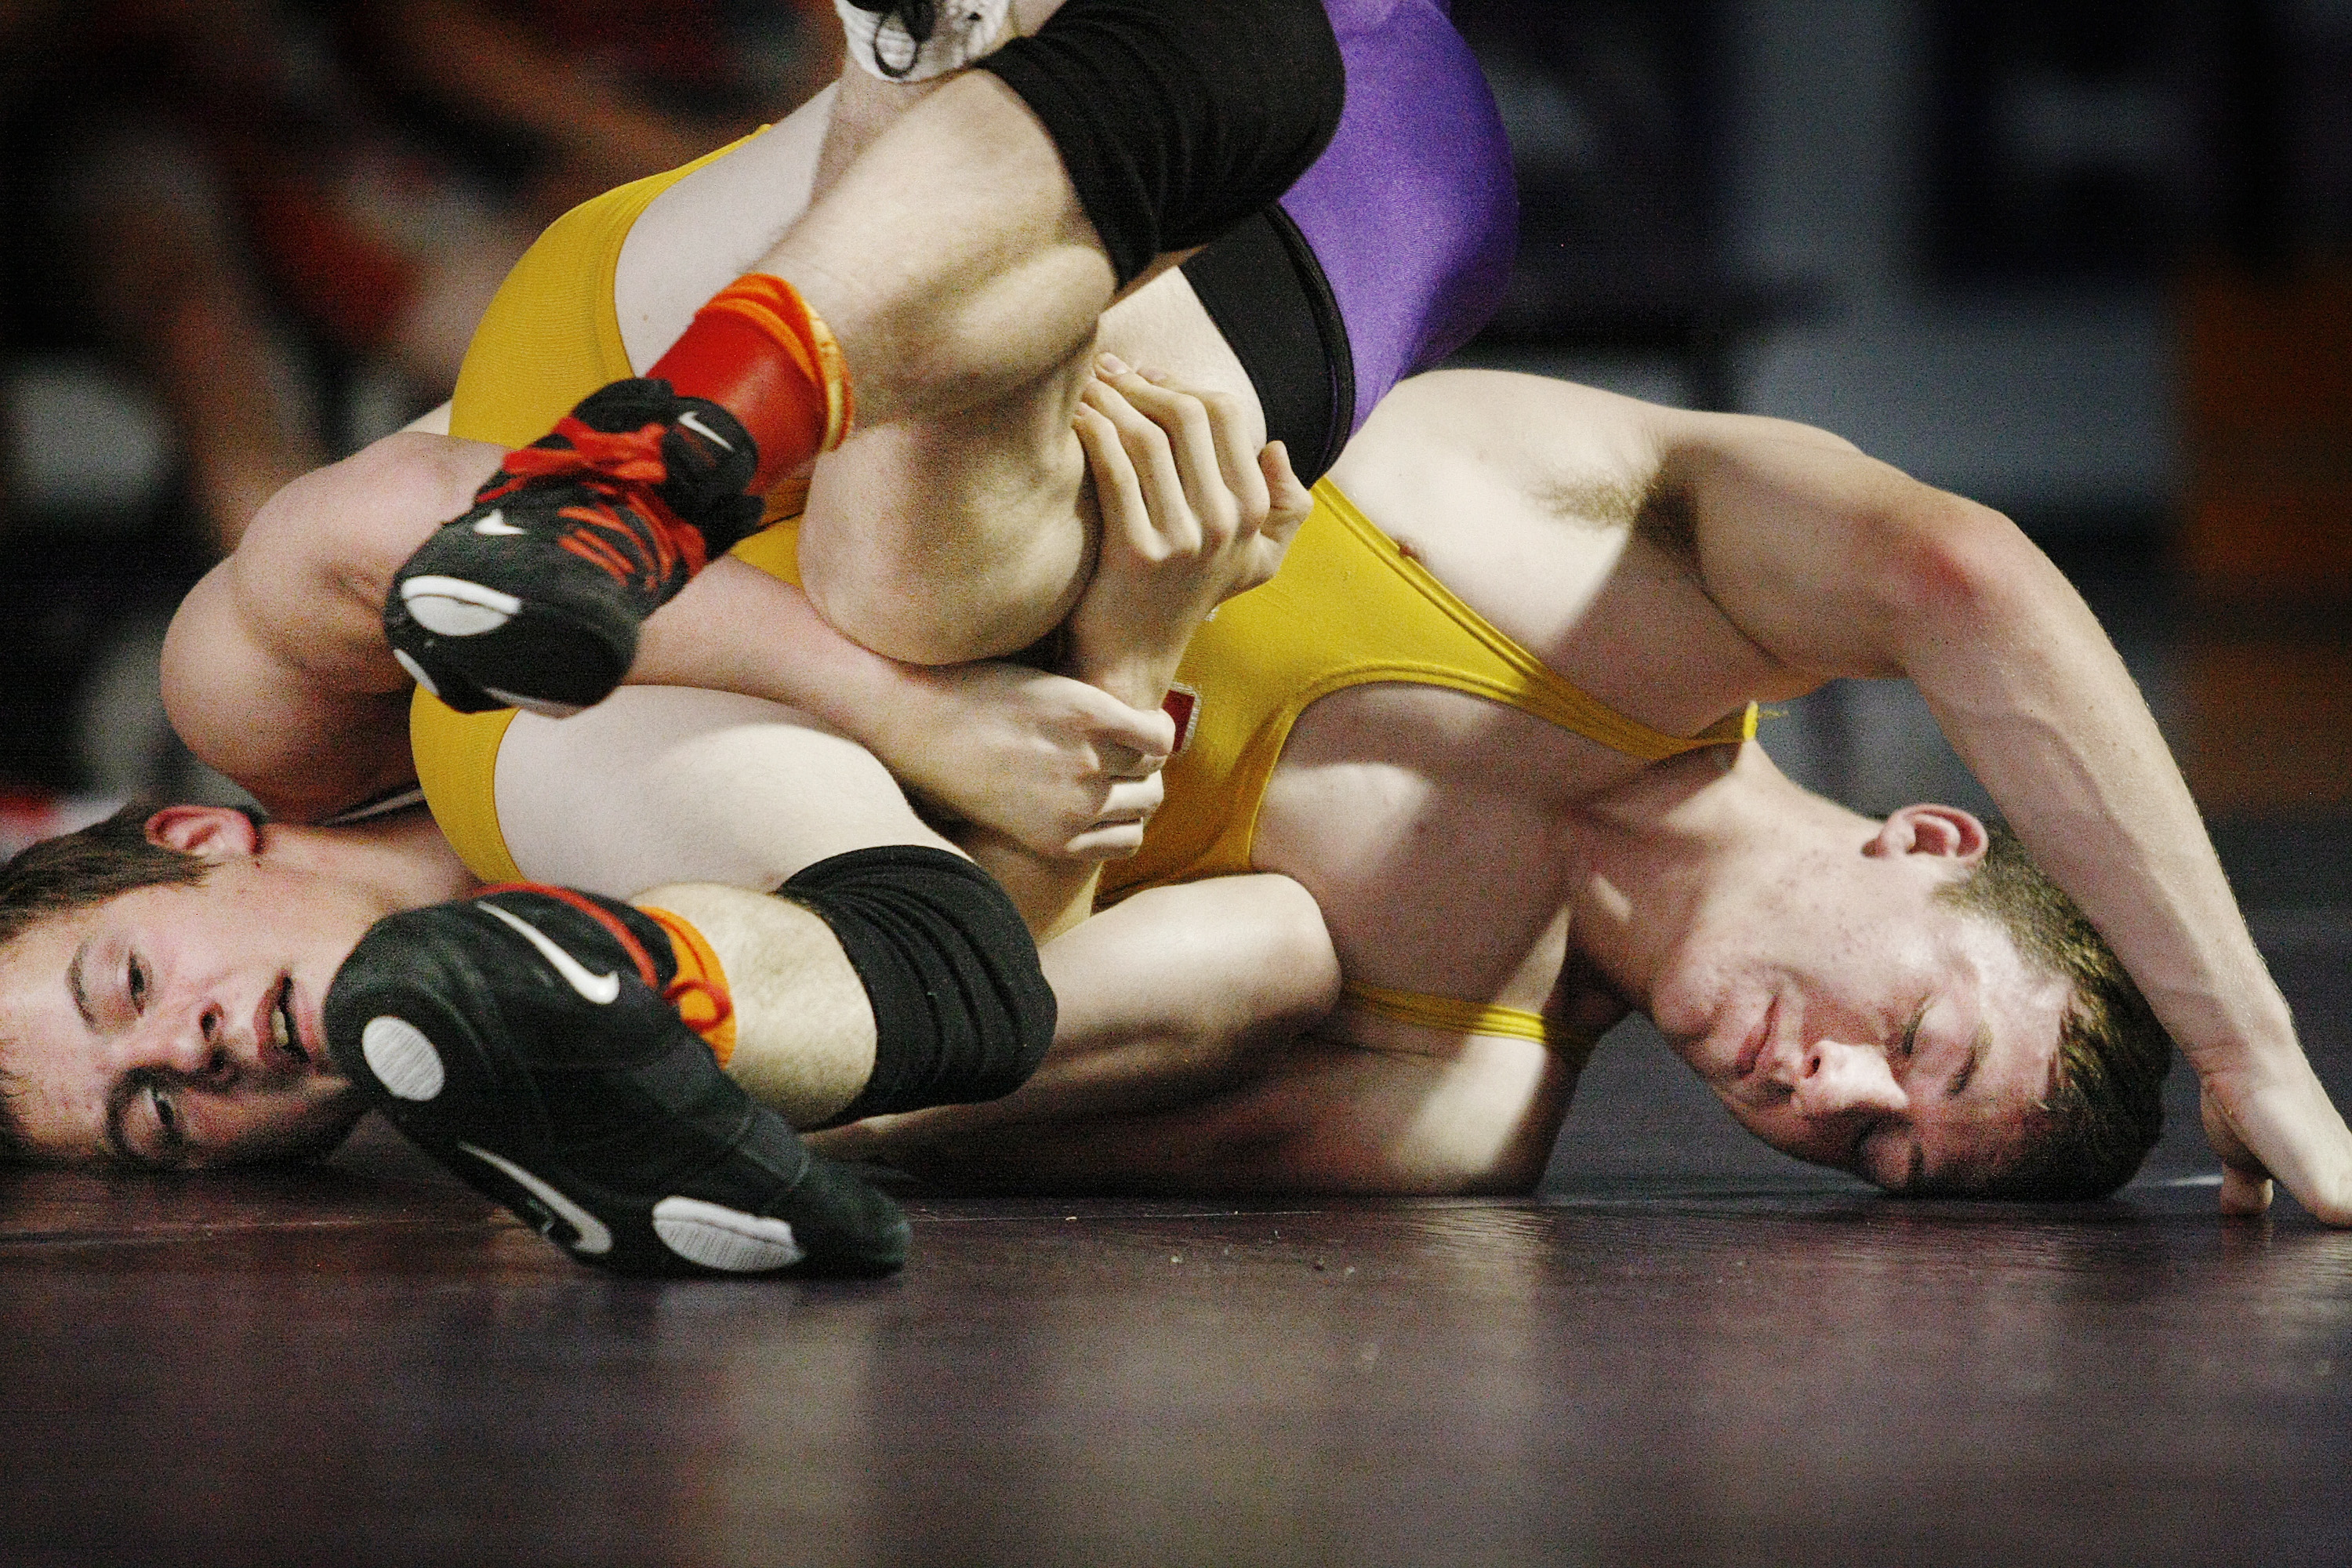 Bradley Beaulieu of Marshwood, left, tangles with Jonathan Fletcher of Nebraska as all-star wrestlers from Maine and Nebraska meet in a match at Marshwood High School Tuesday in South Berwick.  Jill Brady / Staff Photographer